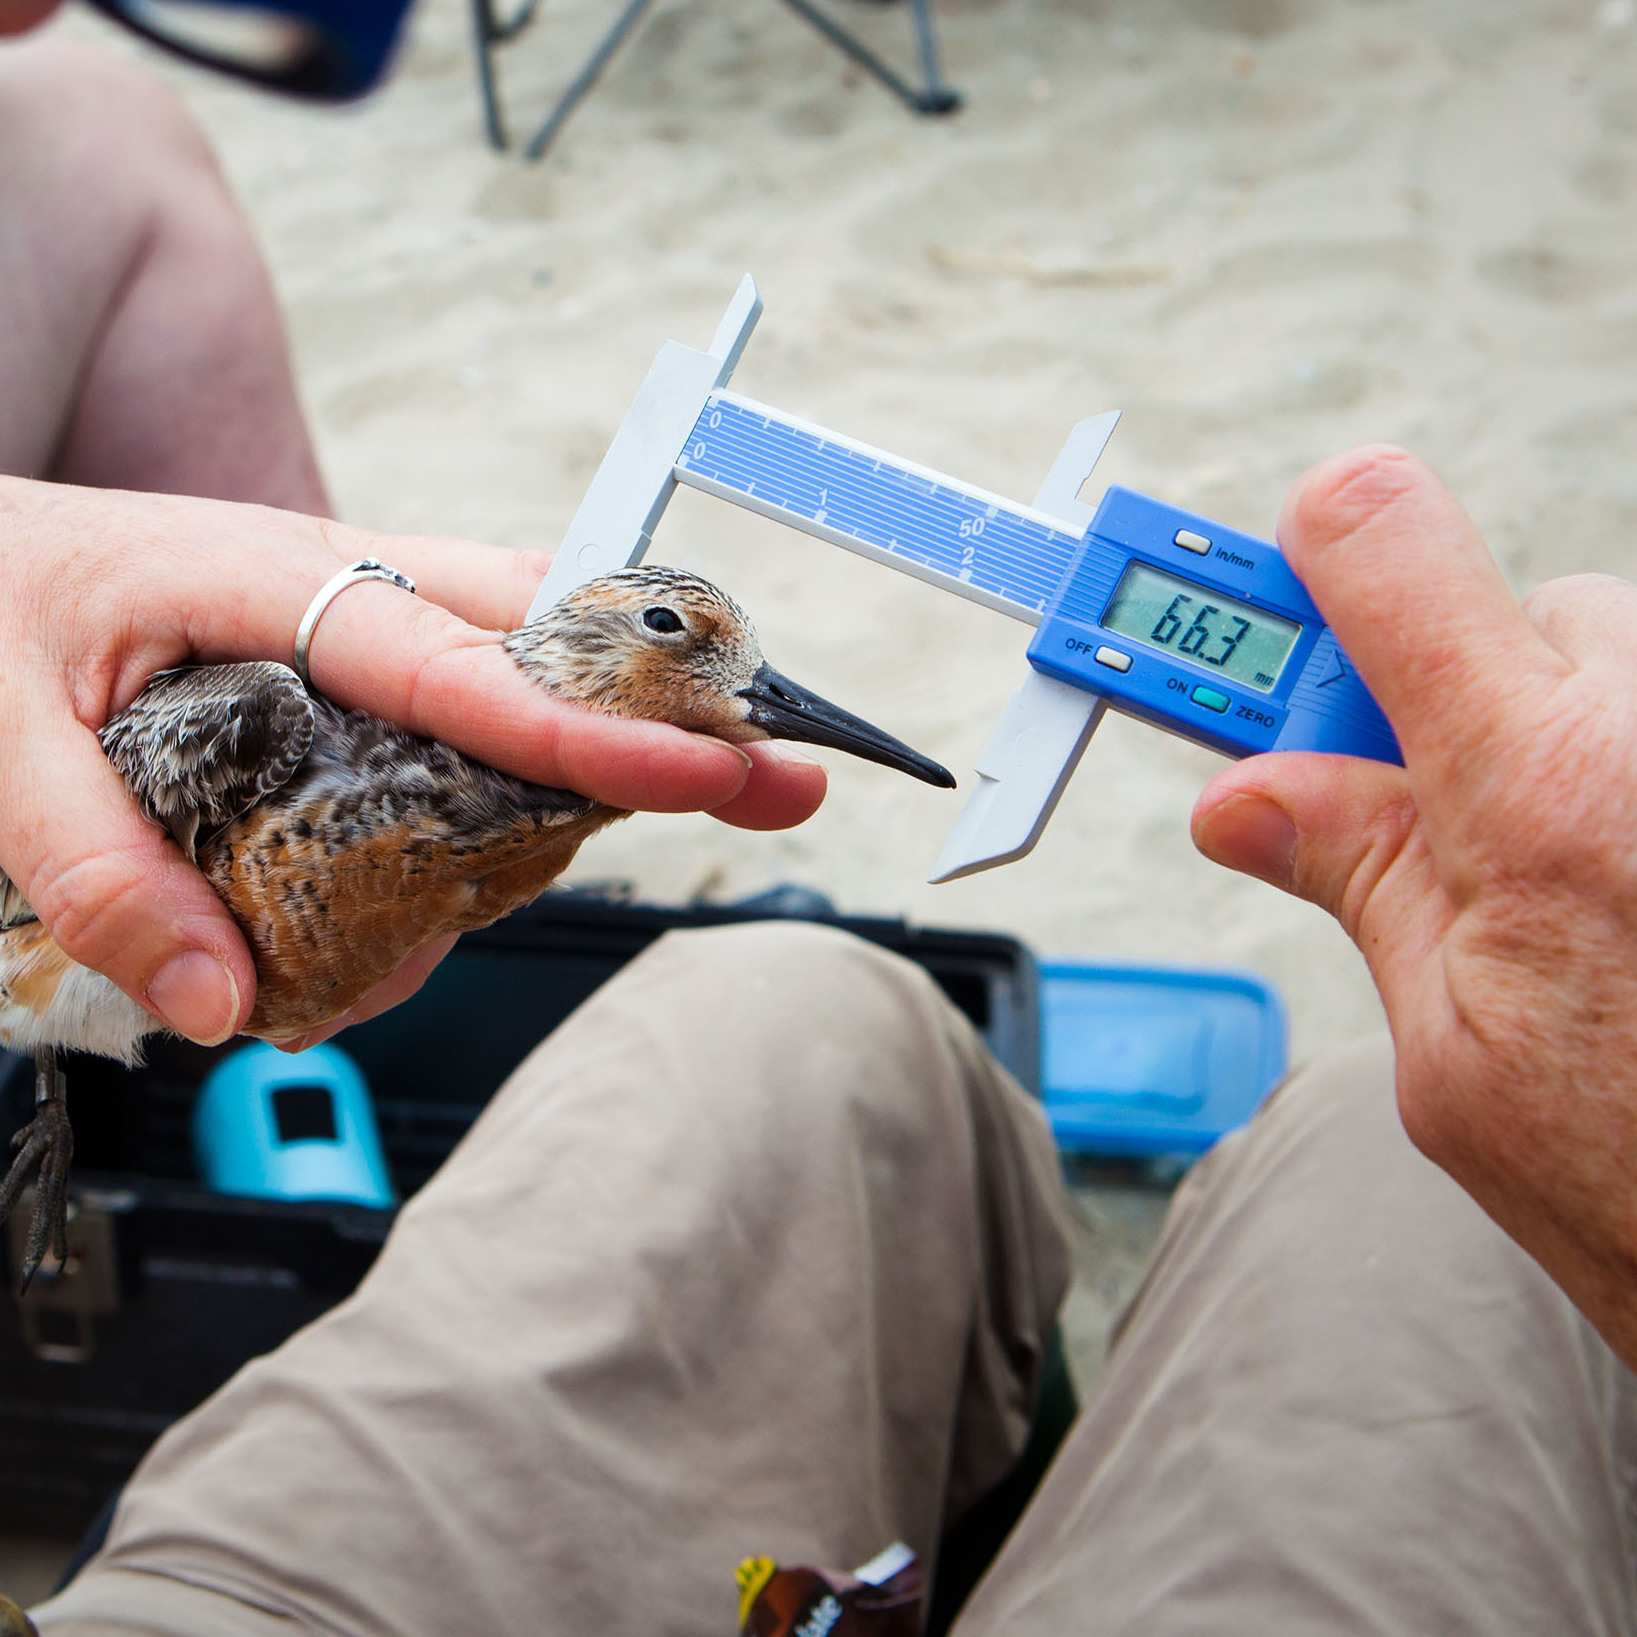 Volunteers sort the birds by species. Then, one by one, each bird is measured, weighed and banded.